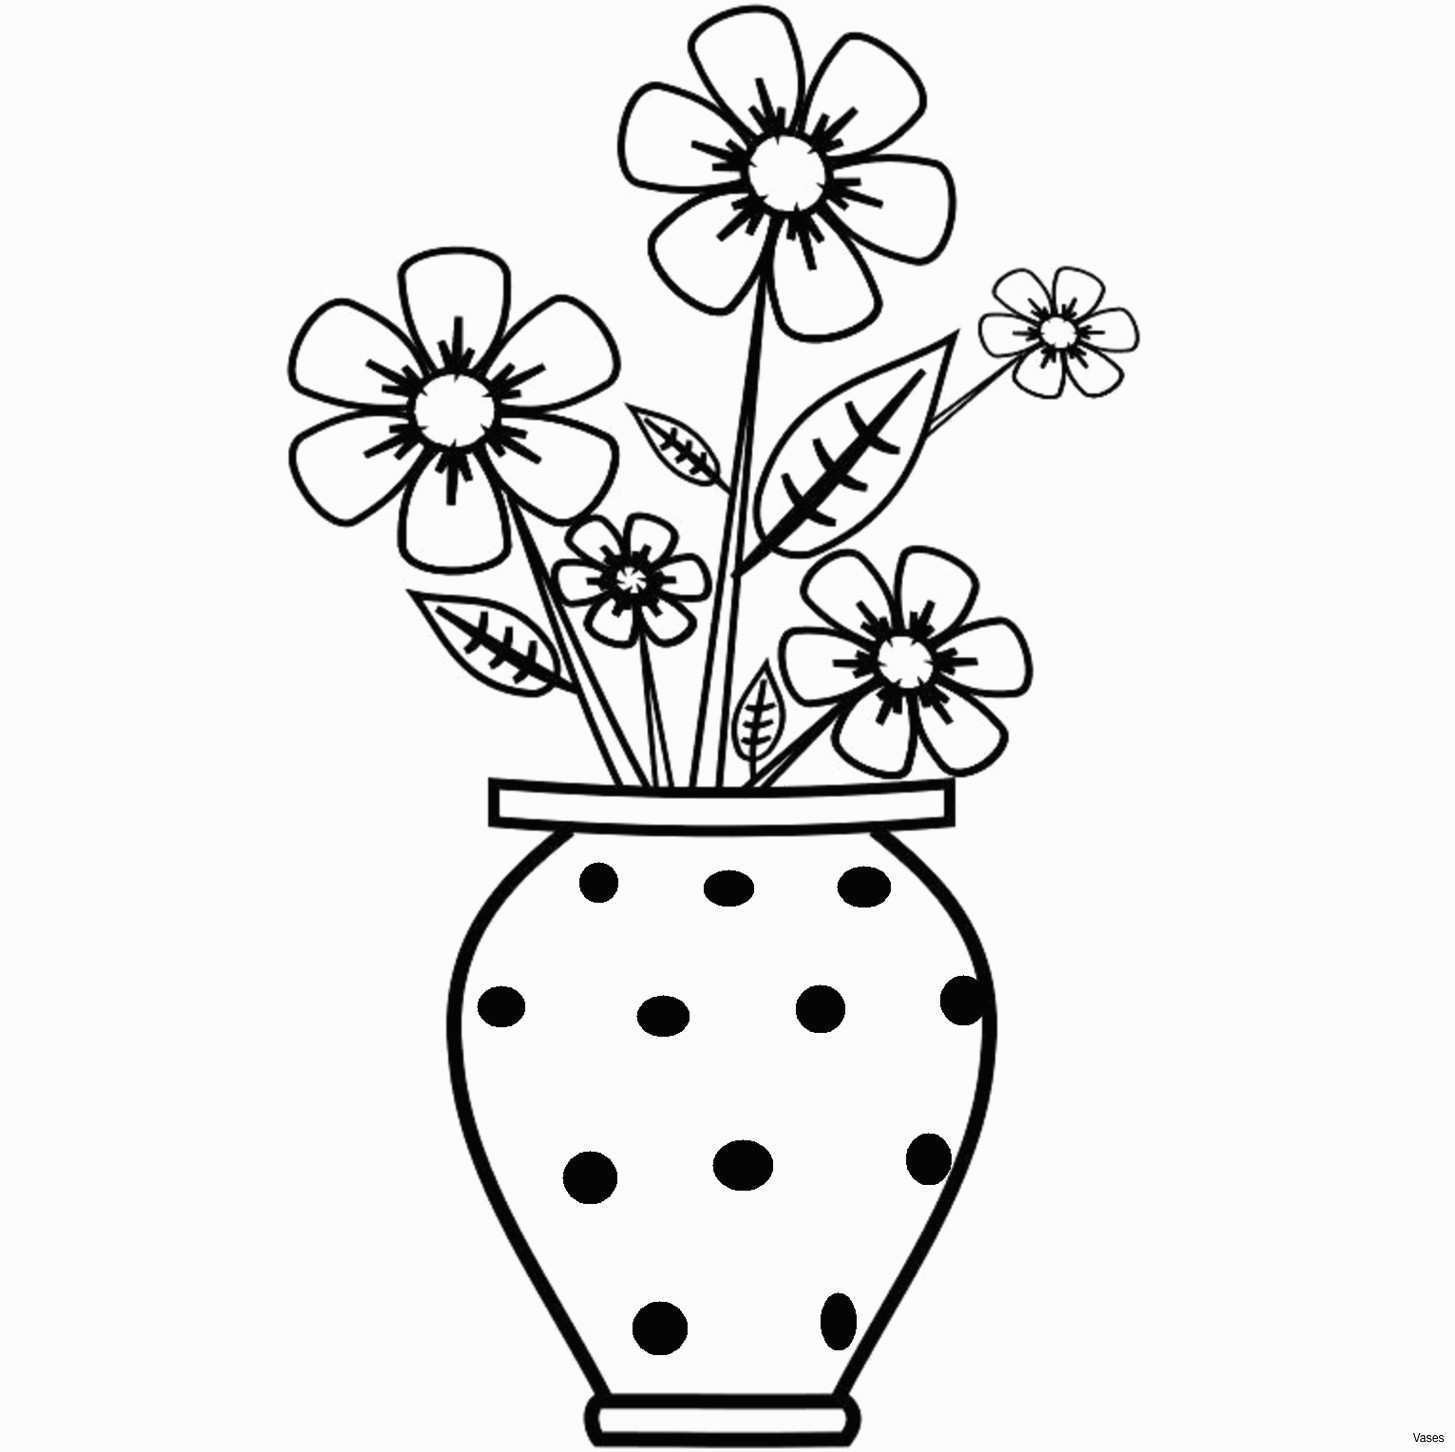 tombstone flower vases of new clipart spring flowers black and white wedding ideas regarding clipart spring flowers black and white new flower vase for tombstone unique will clipart colored flower